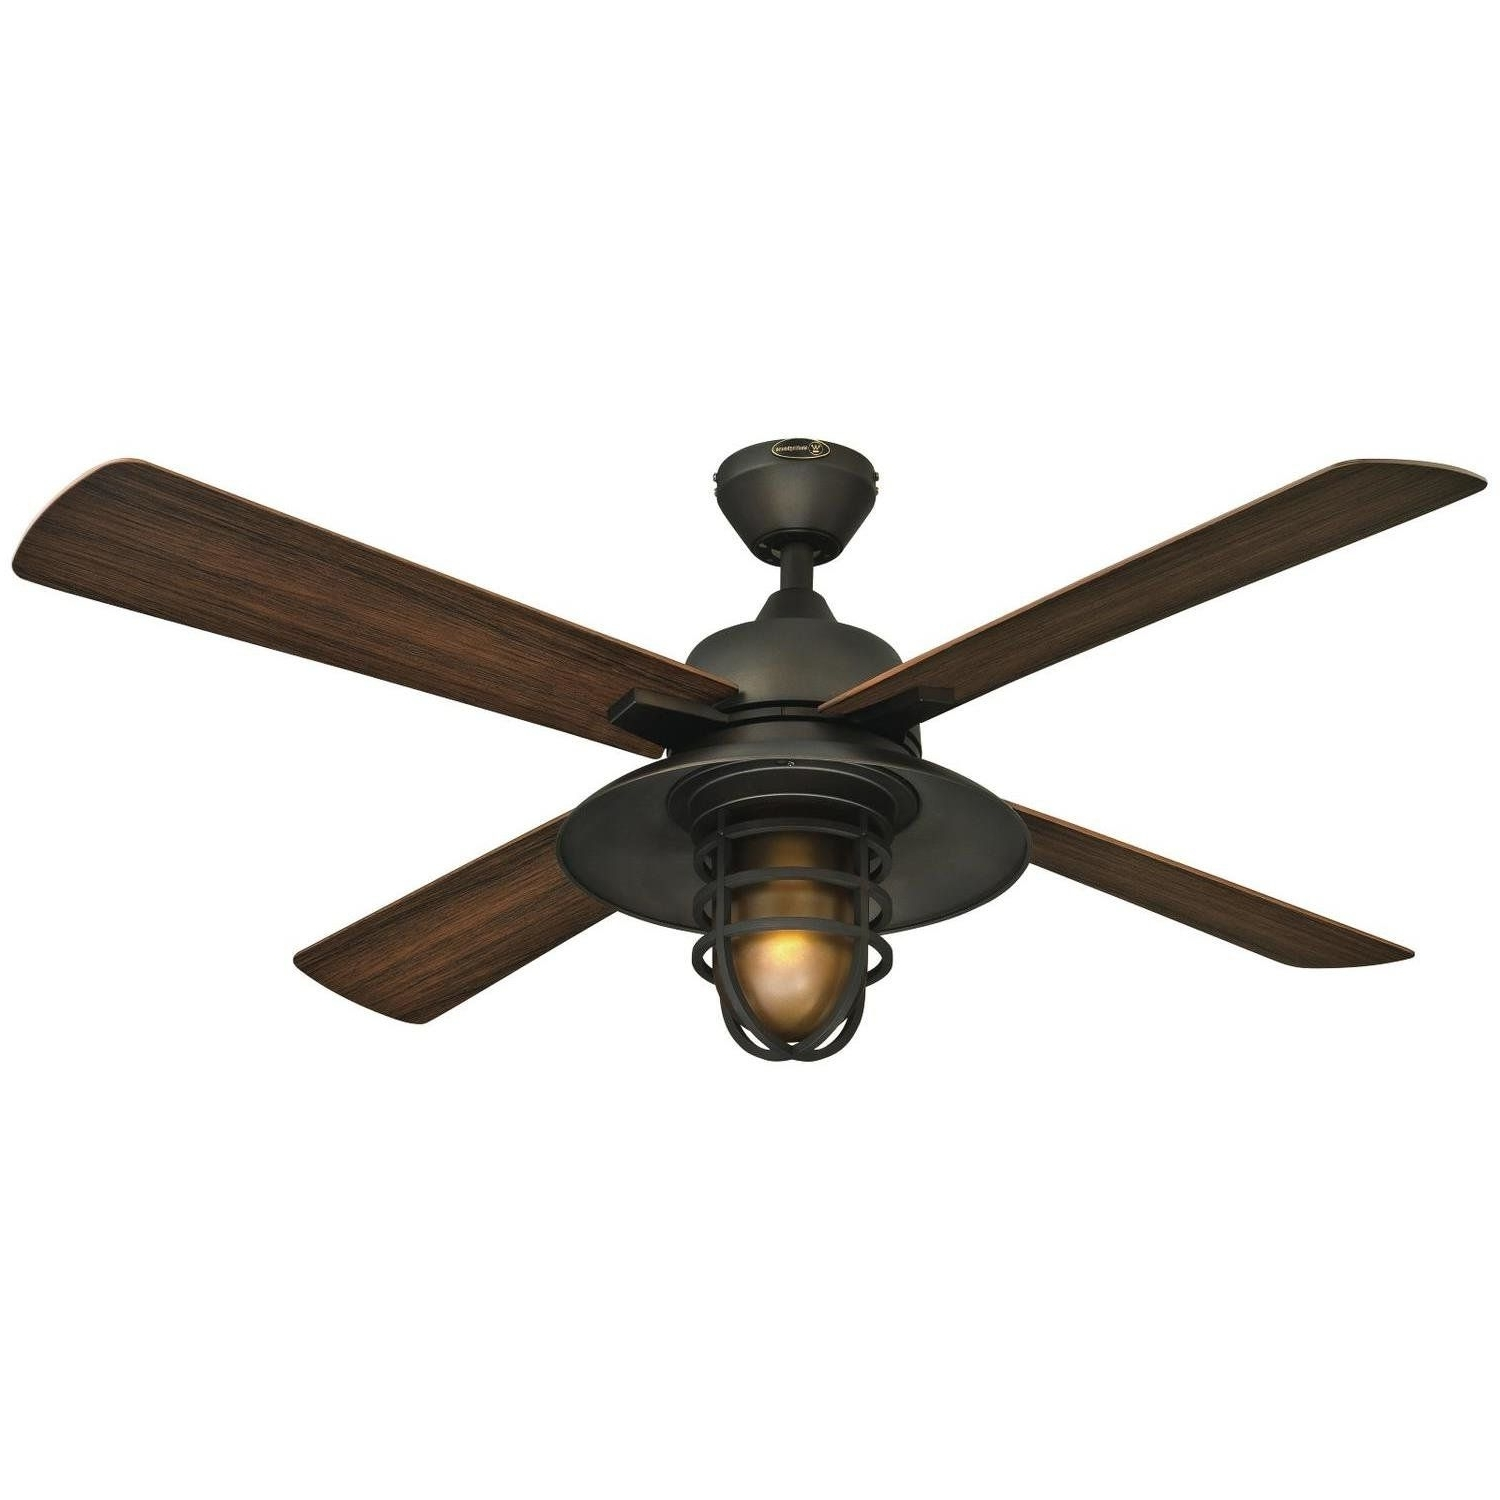 Best Rustic Ceiling Fans You Ull Love Wayfair Pict For With Lights Pertaining To Well Liked Hampton Bay Outdoor Lighting At Wayfair (View 5 of 20)